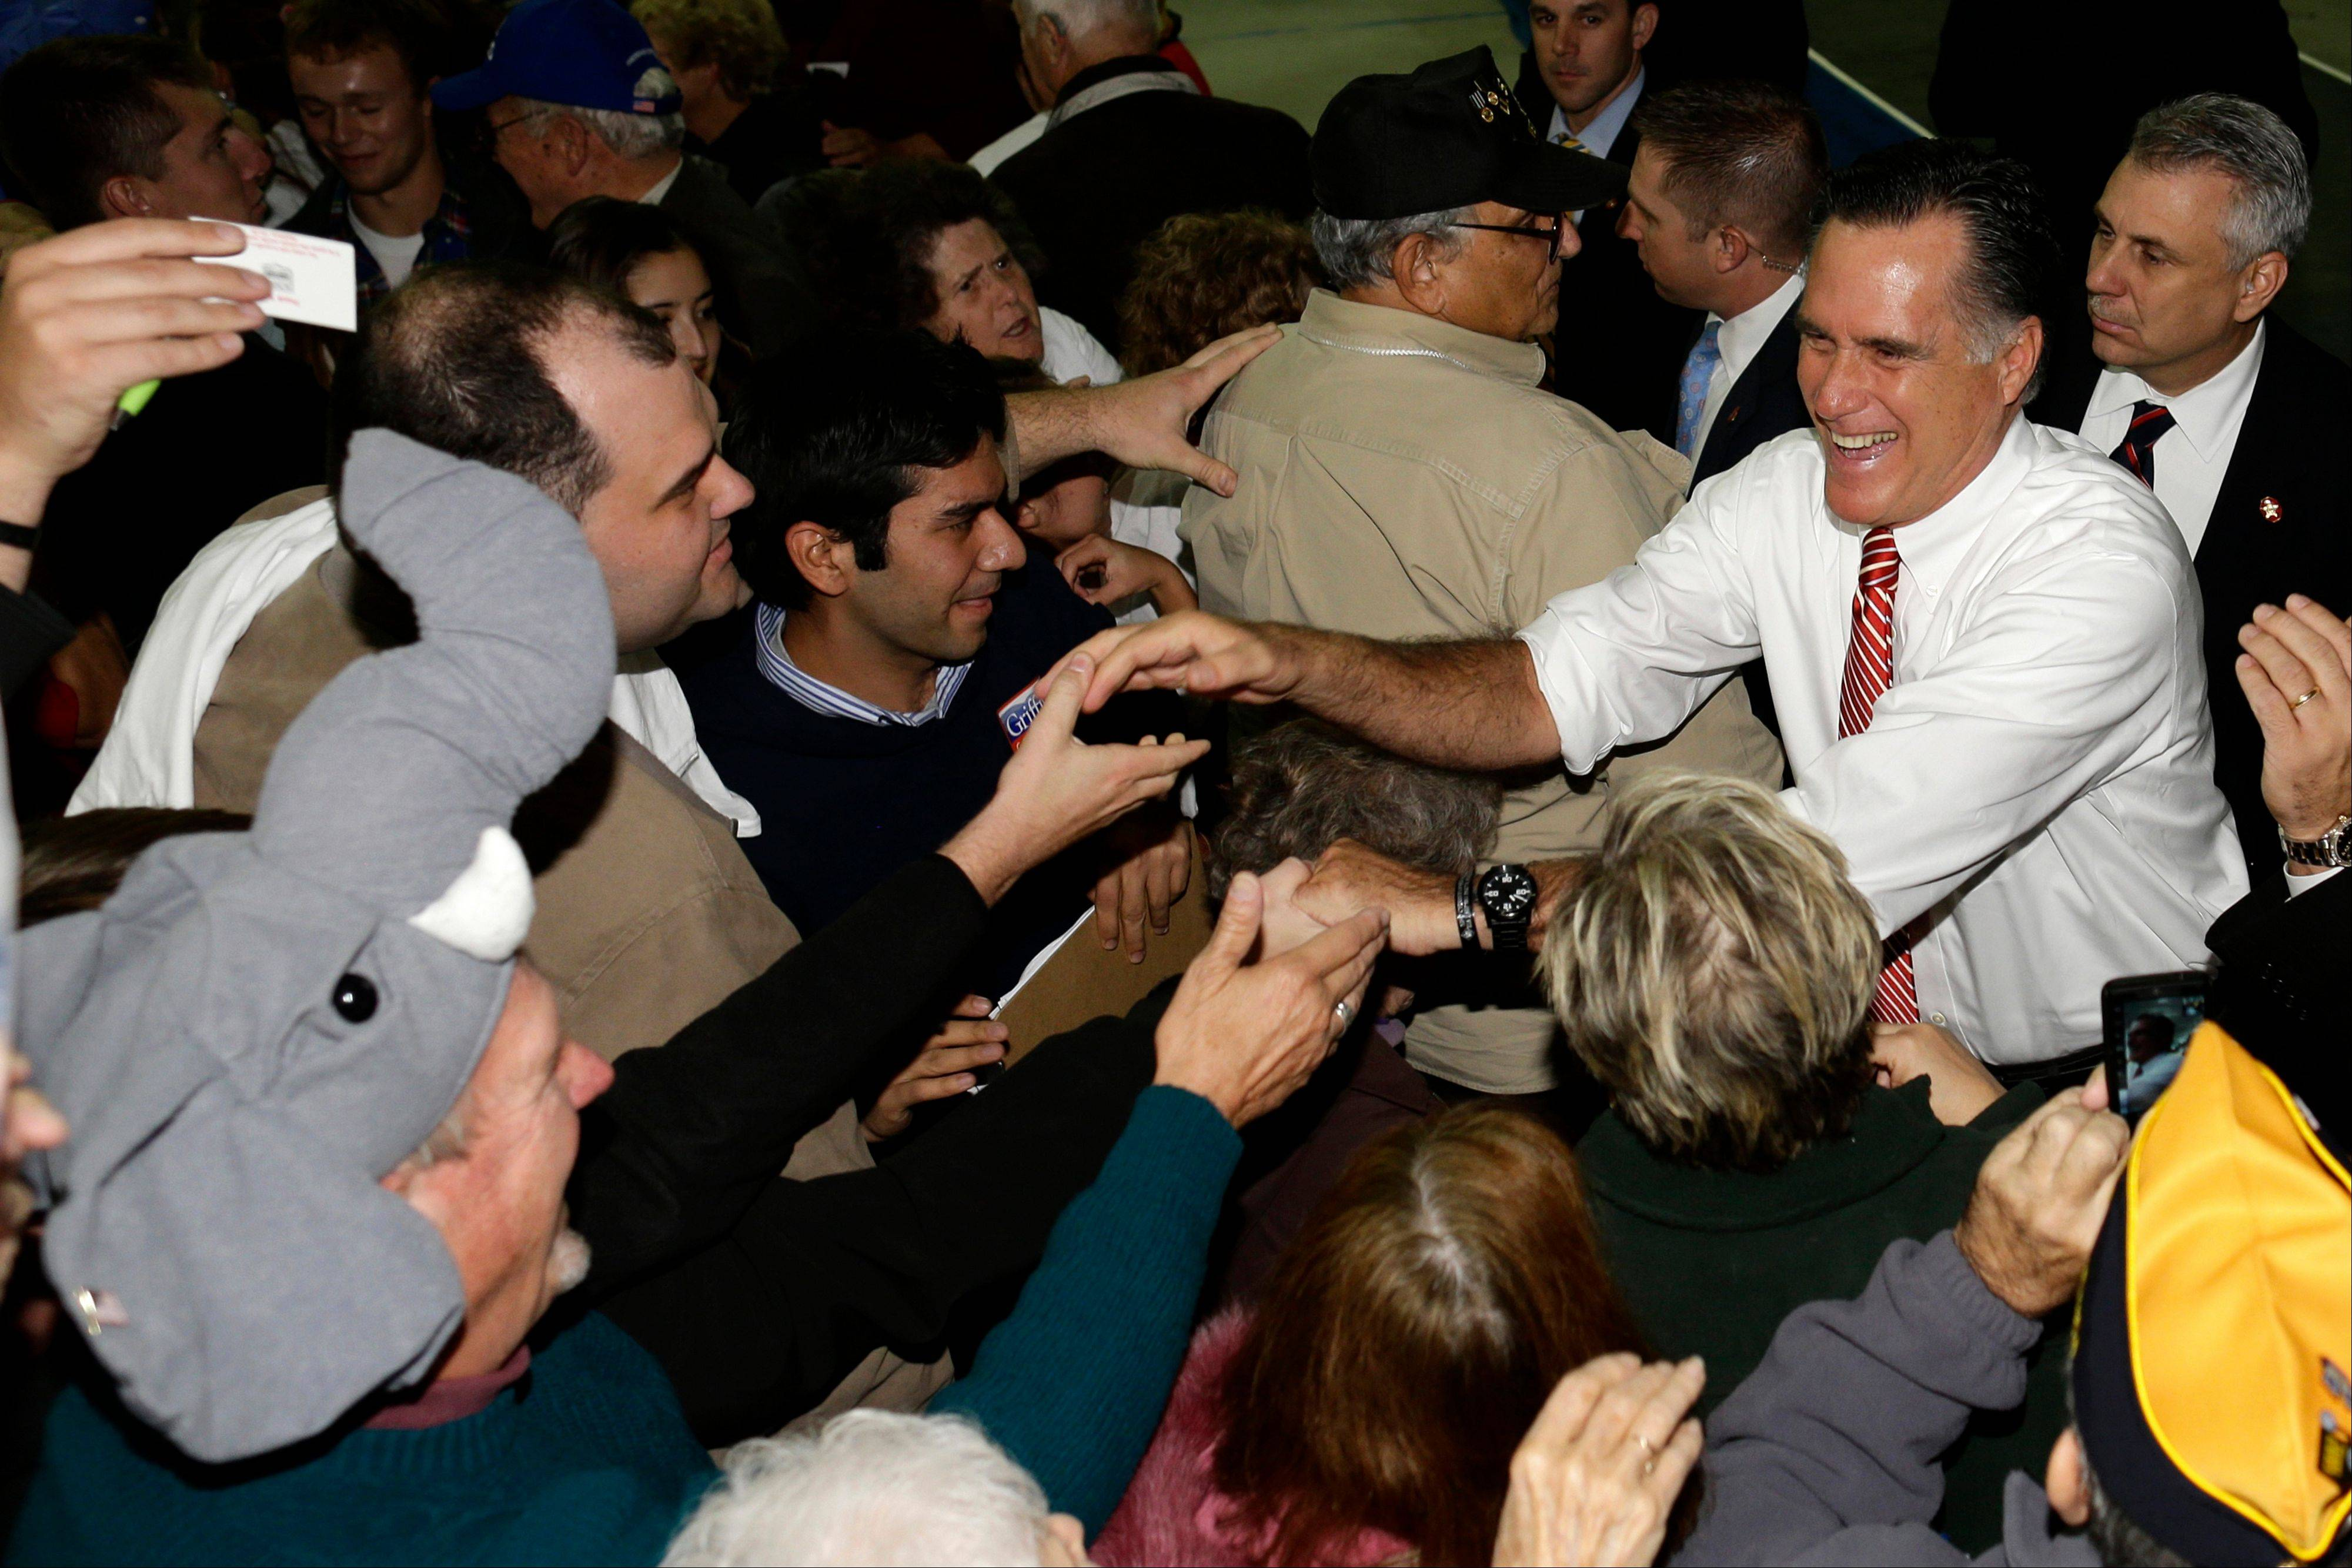 Republican presidential candidate, former Massachusetts Gov. Mitt Romney greets supporters, including one wearing an elephant hat, left, as he campaigns at Integrity Windows in Roanoke, Va., Thursday, Nov. 1, 2012.